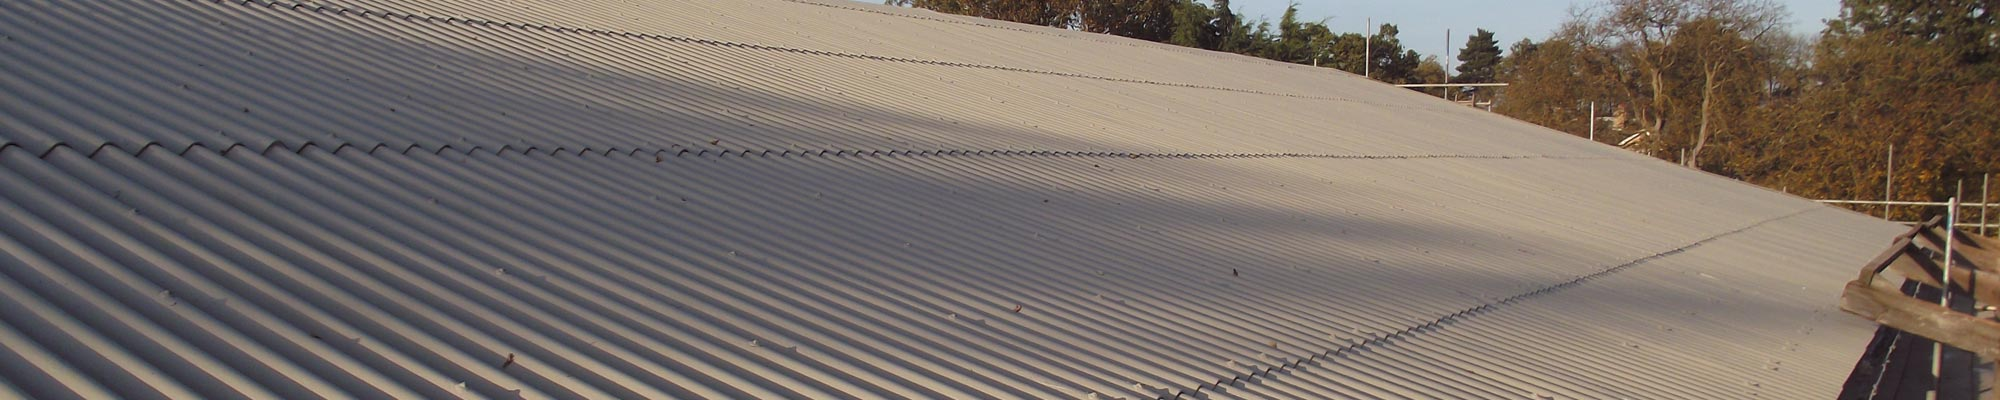 Commercial flat roofing systems from Proctor Roofing